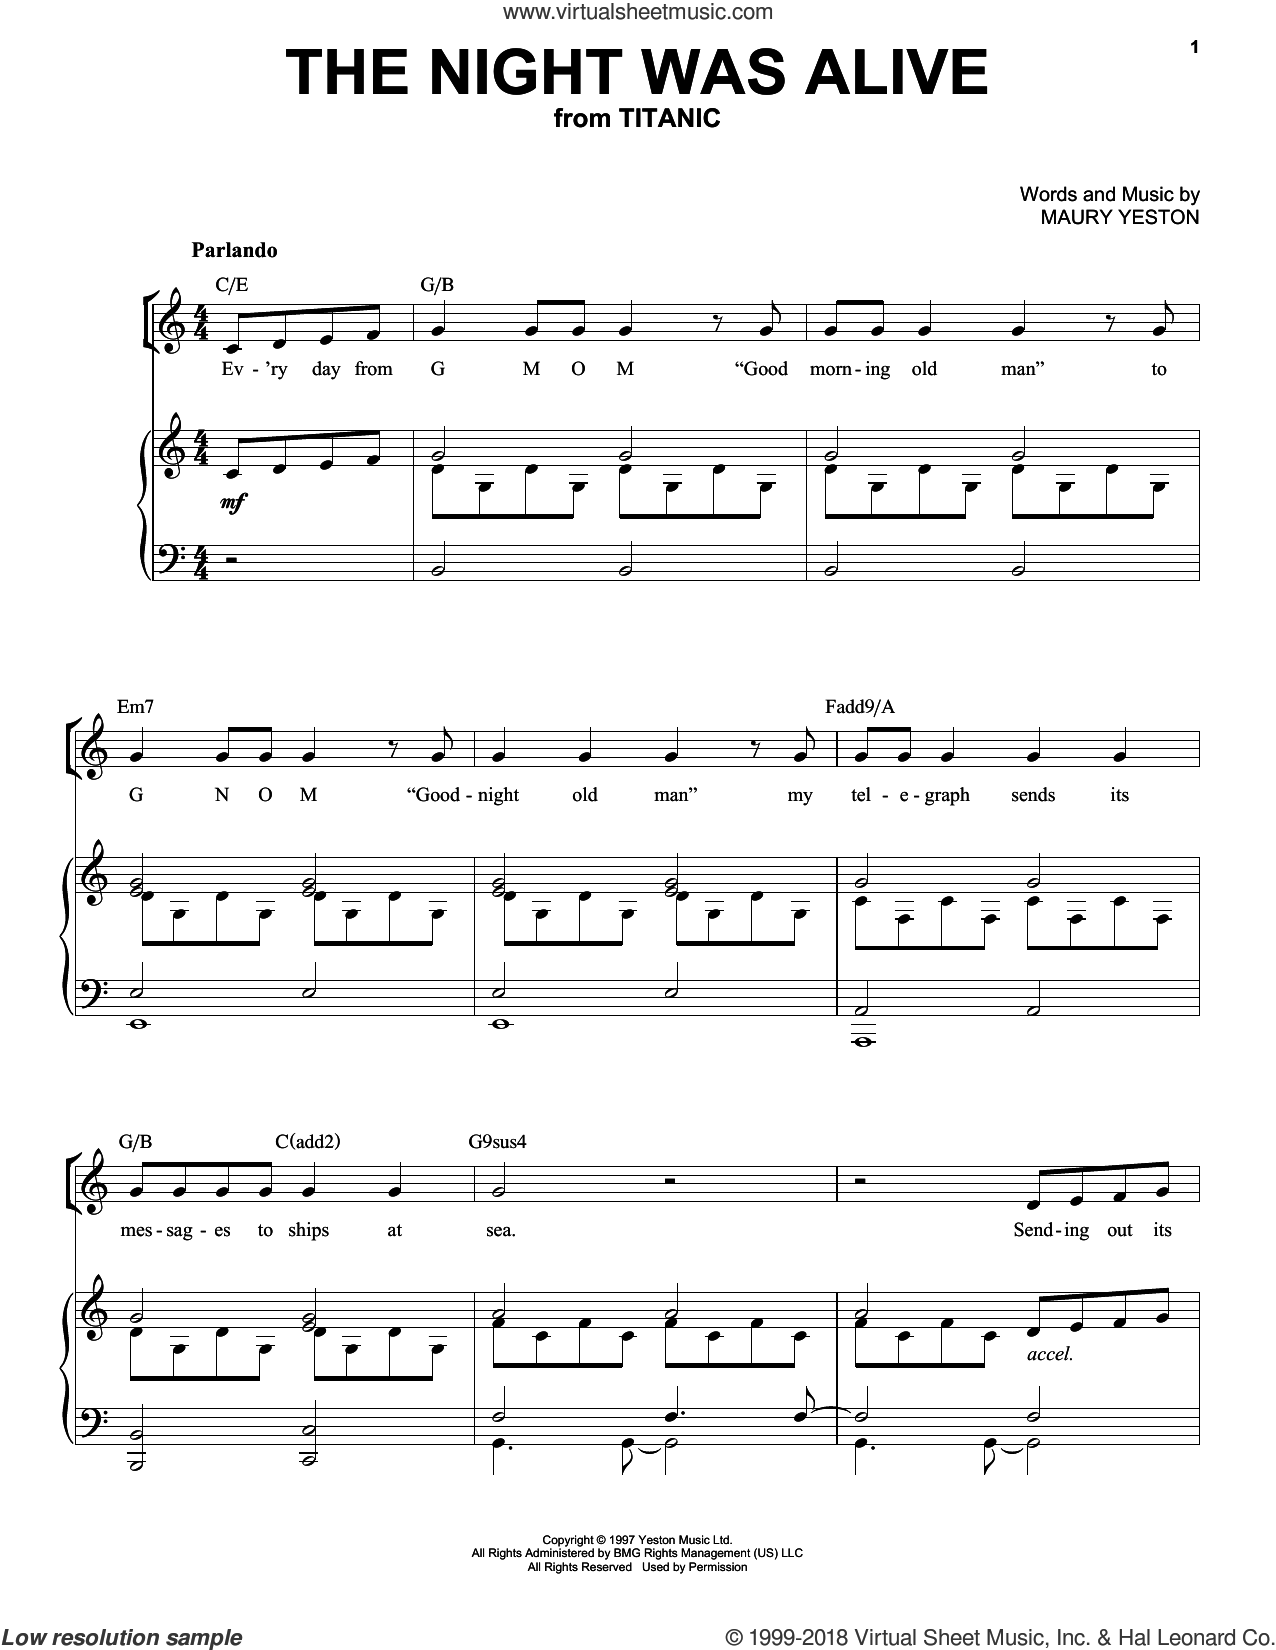 The Night Was Alive sheet music for voice, piano or guitar by Maury Yeston. Score Image Preview.